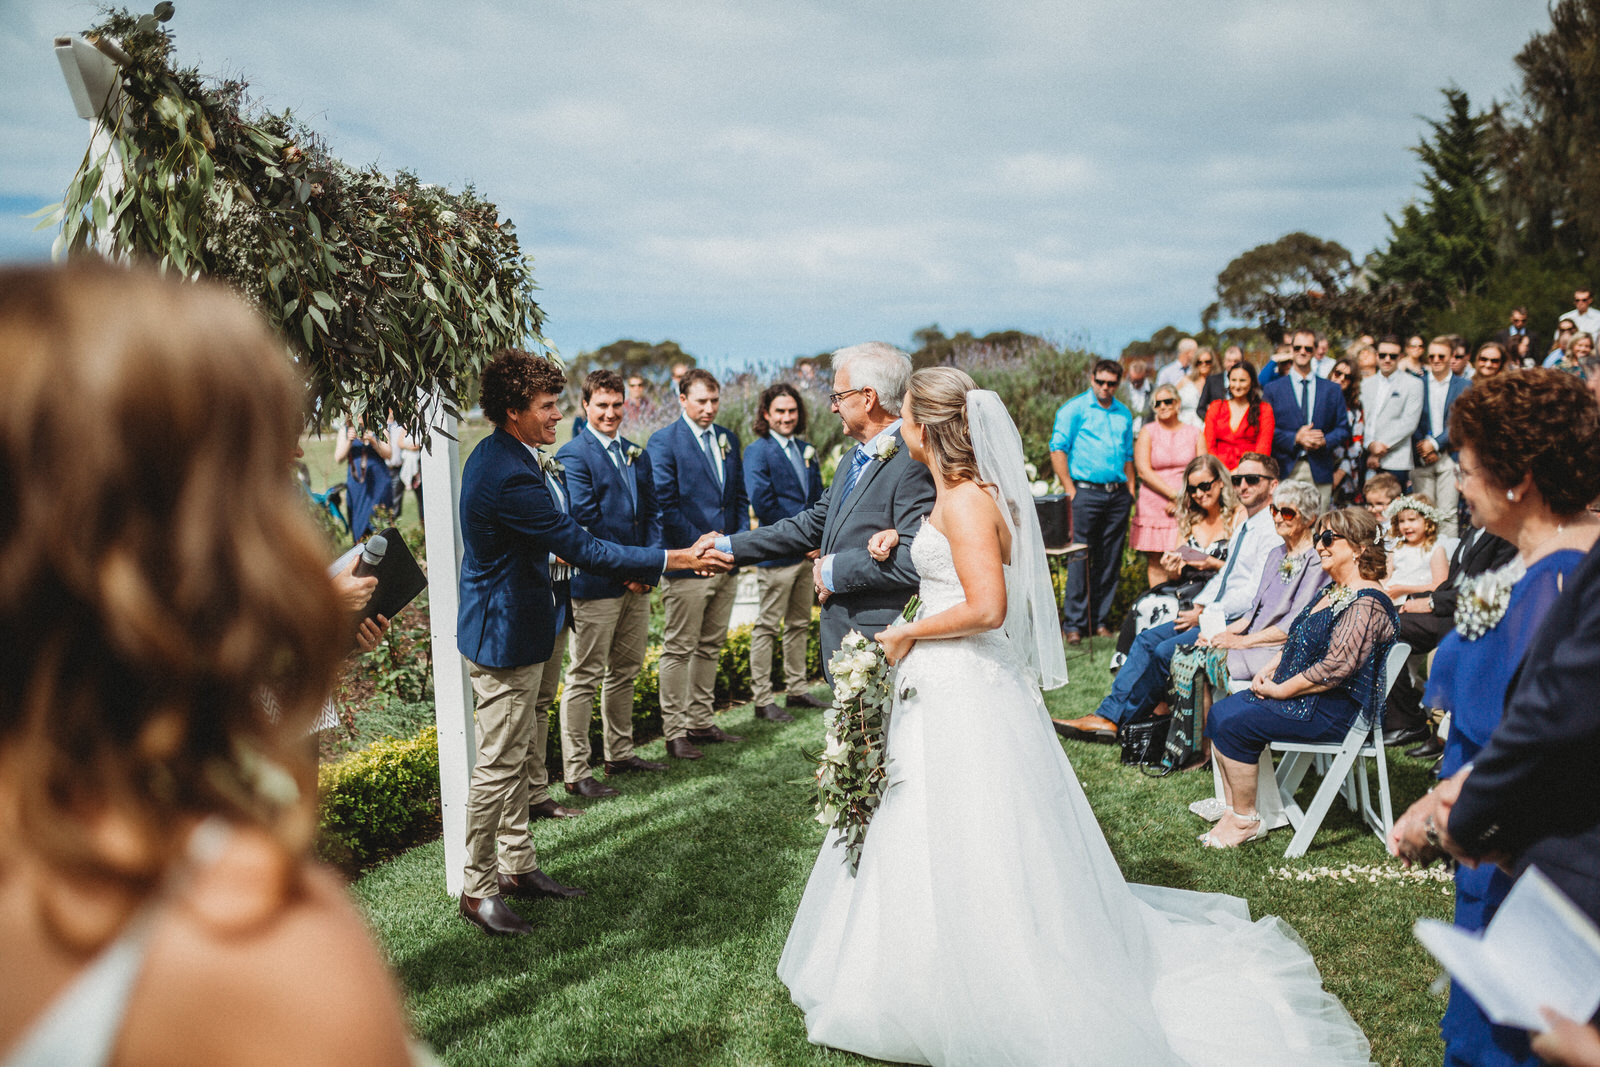 wedding inspo, classic wedding, rustic wedding, australian wedding